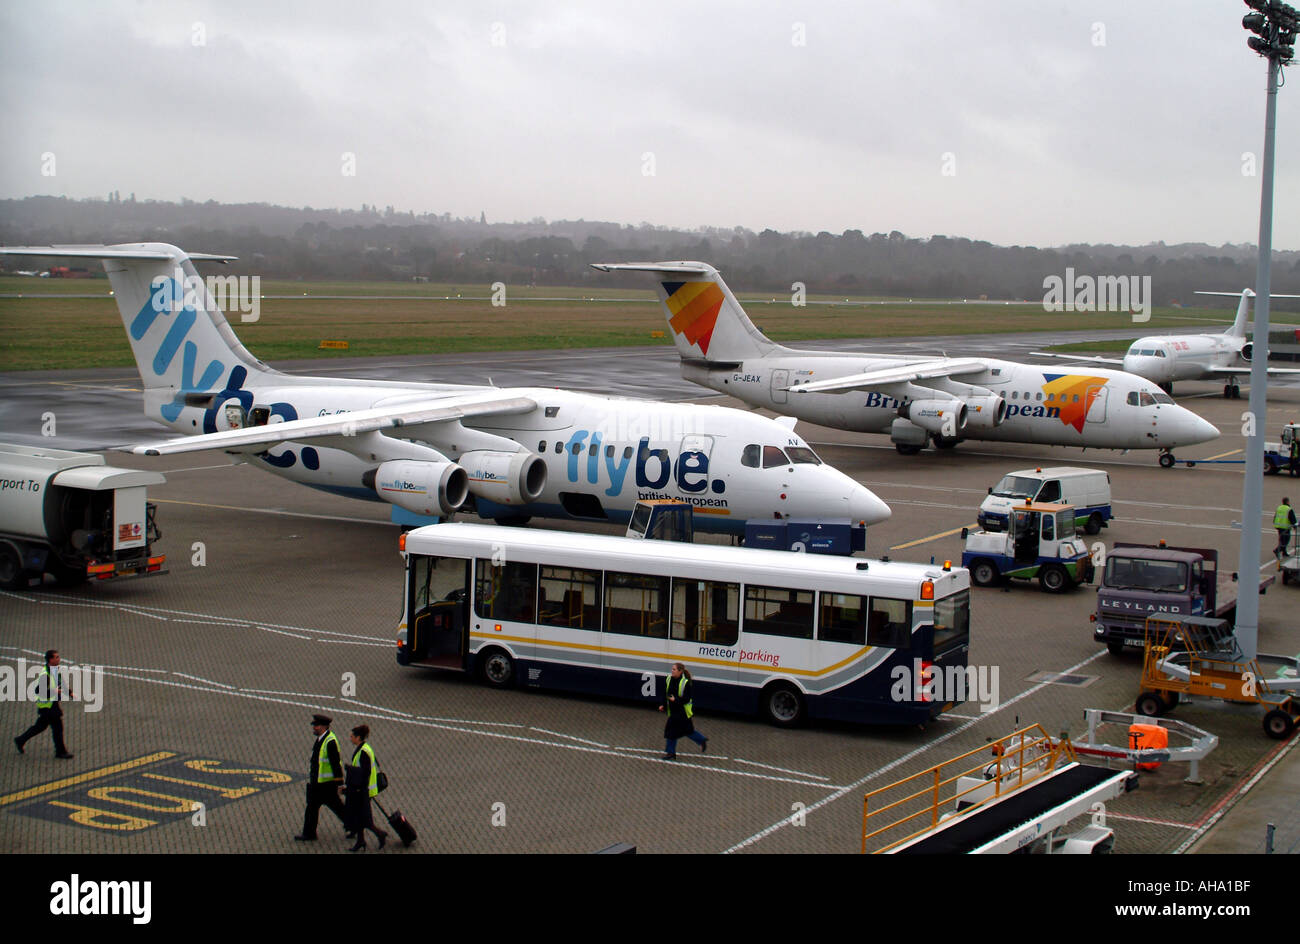 Flybe BAc 146 Aircraft on the apron at Southampton Airport Hampshire England UK - Stock Image